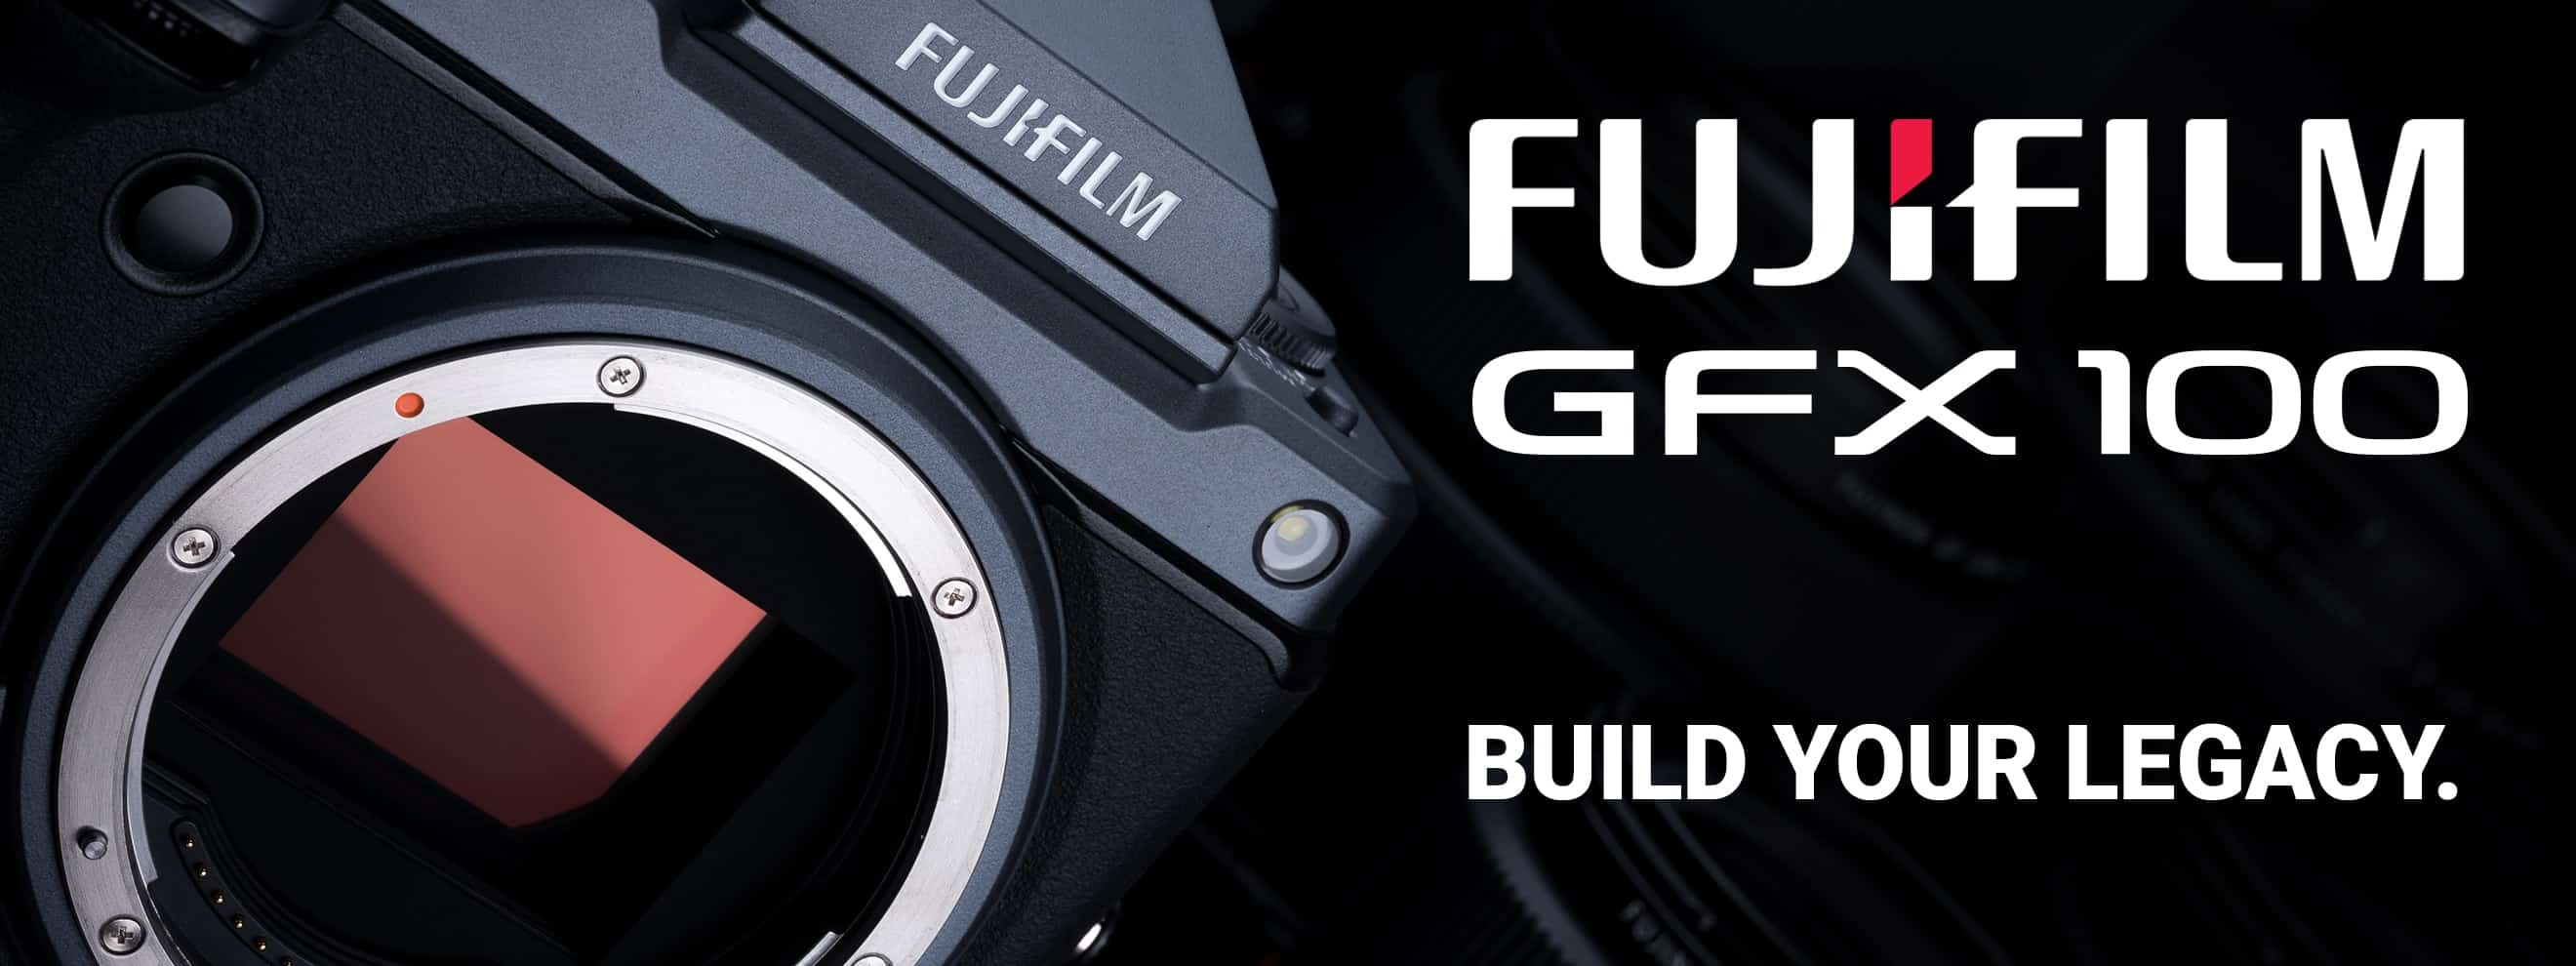 fujifilm- camera brands